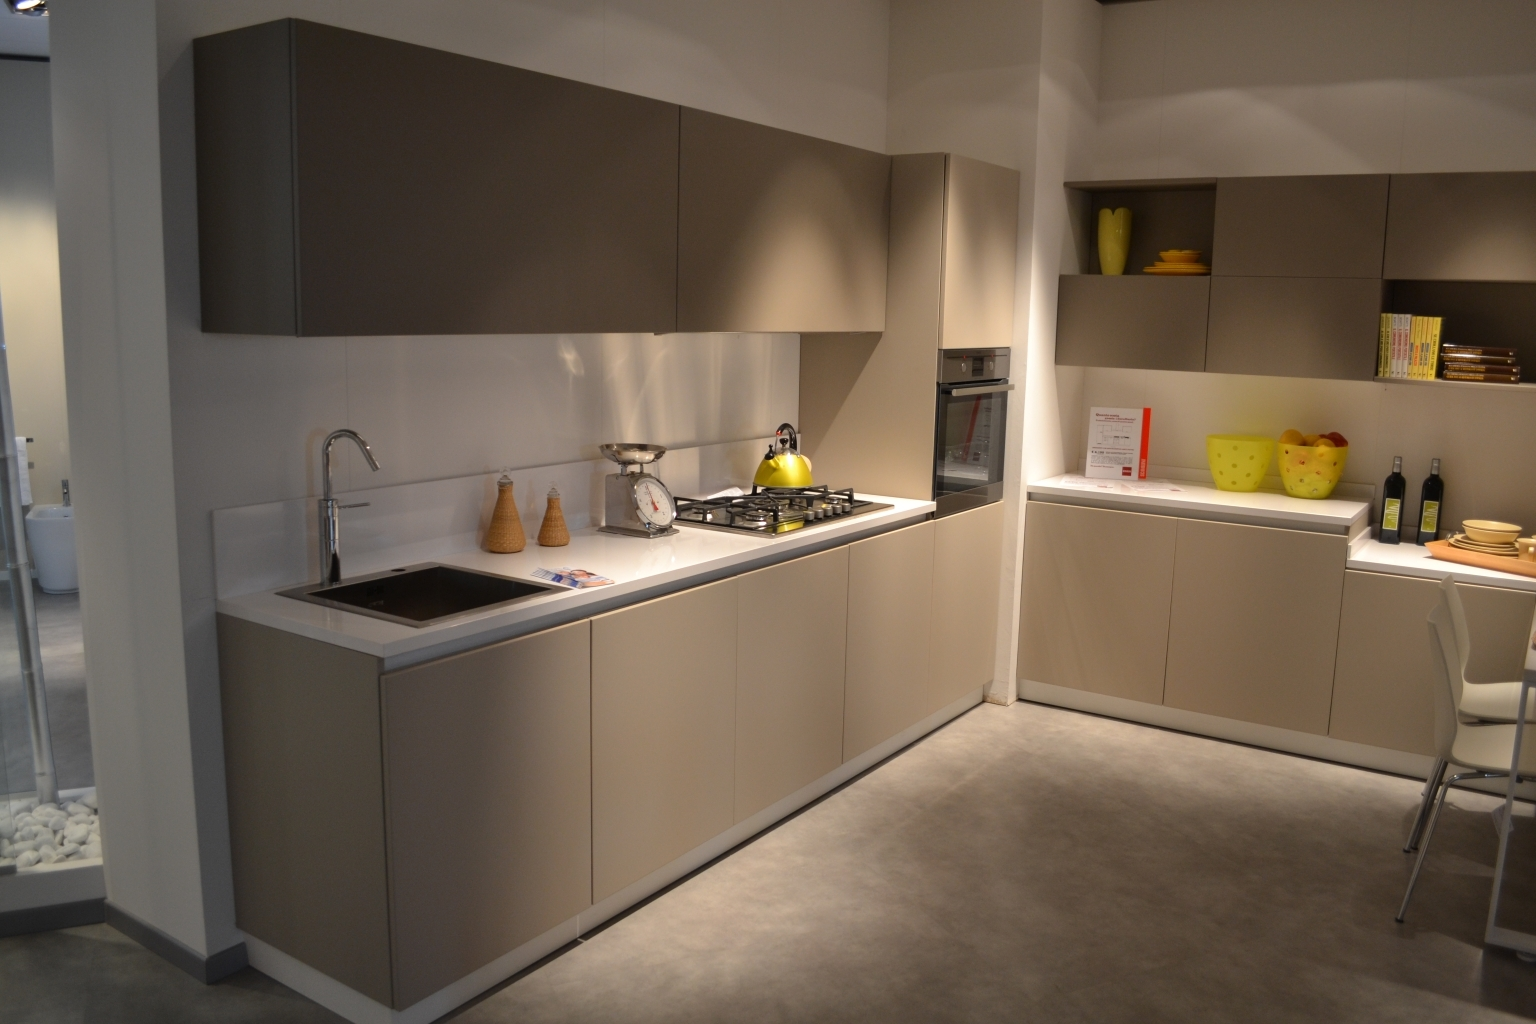 Best Cucina Scavolini Liberamente Prezzo Photos - Ideas & Design ...